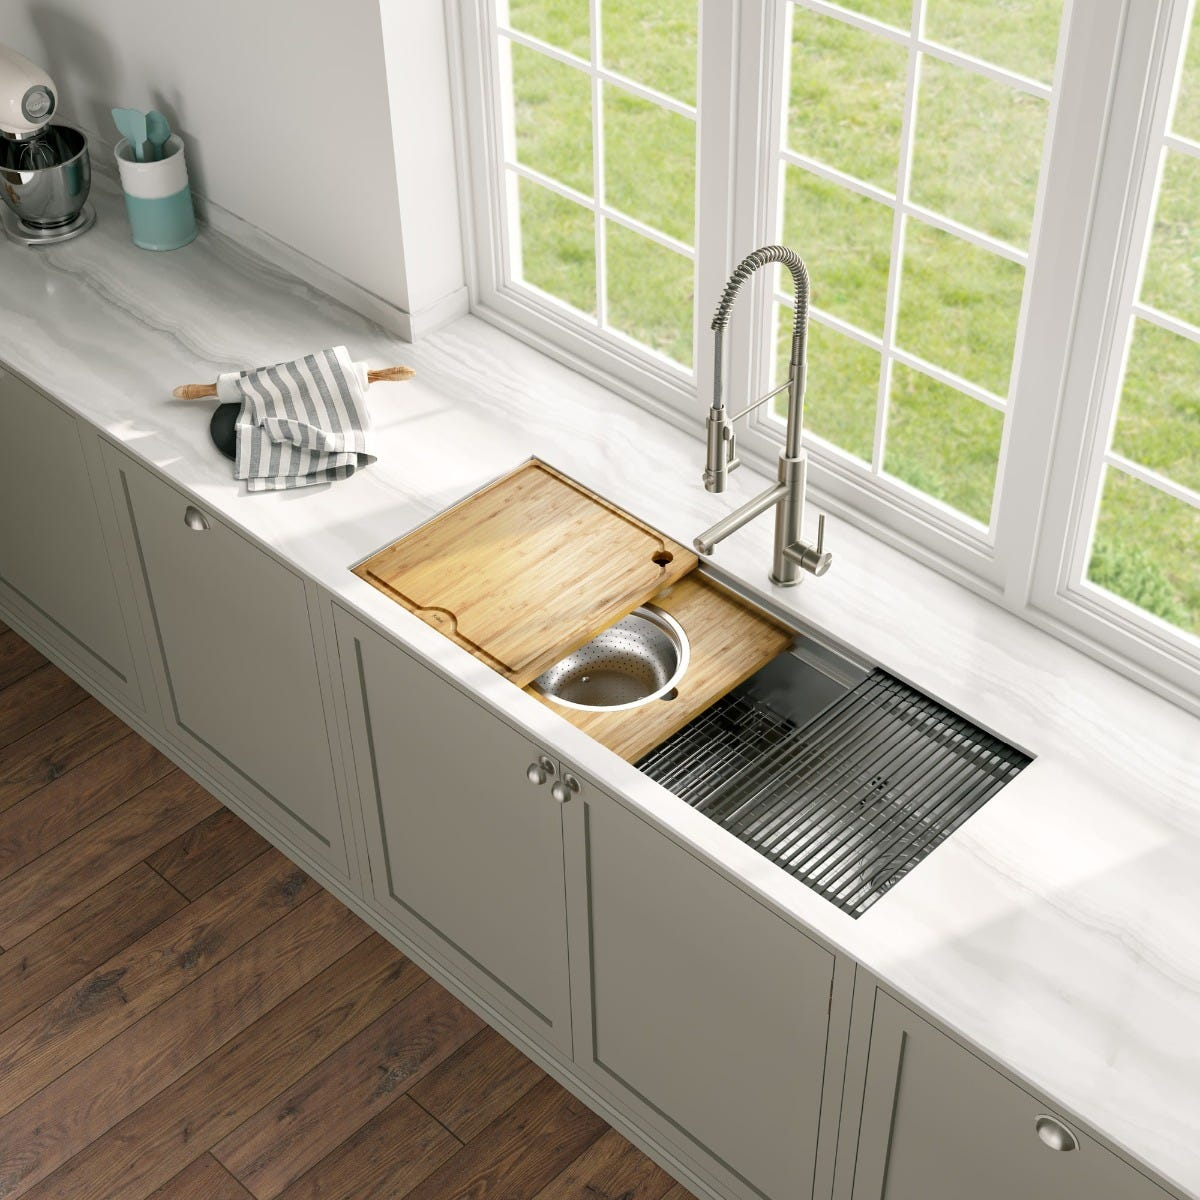 Kraus Kore Workstation Kitchen Sinks